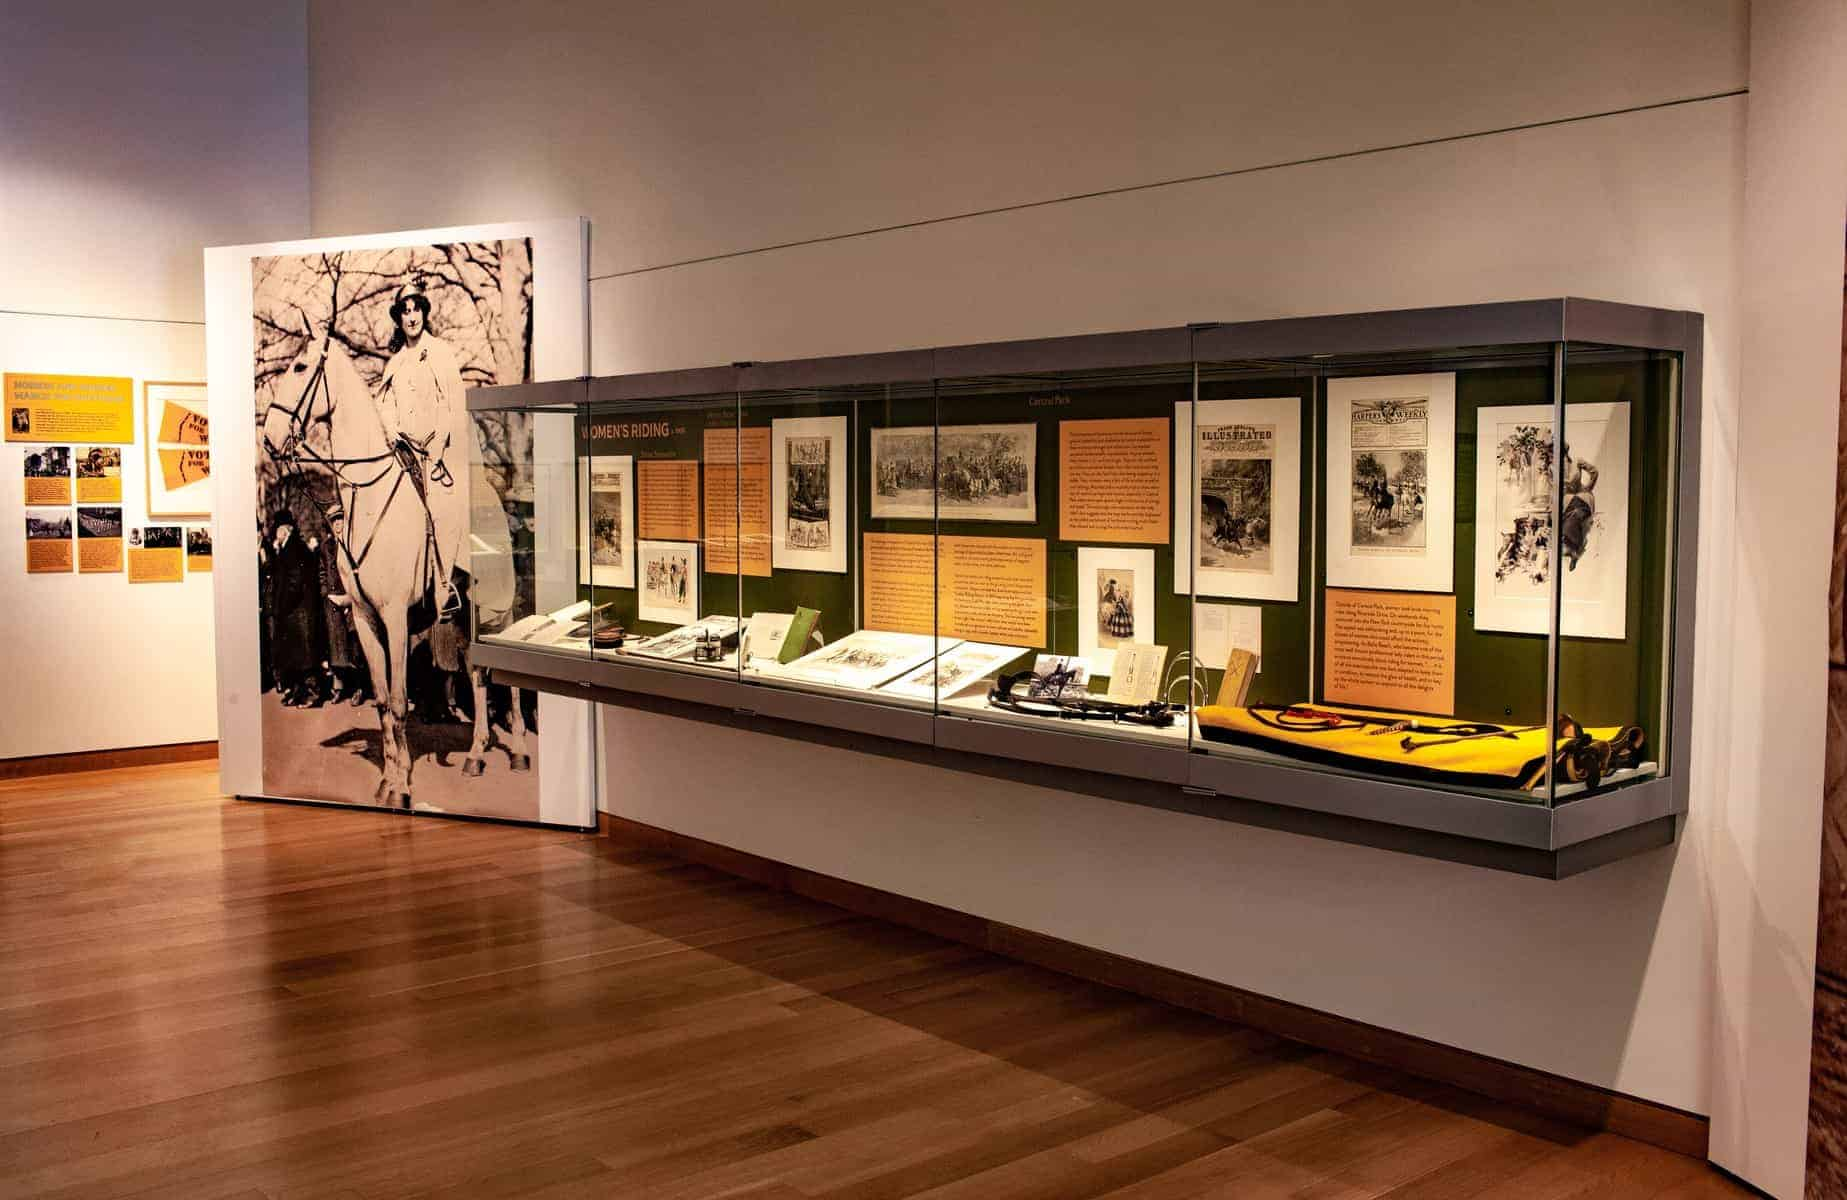 A wider view of part of the Main Library Gallery shows an 8 foot tall poster of a woman in white on horseback, and gives a broad view of additional gallery cases containing artifacts.